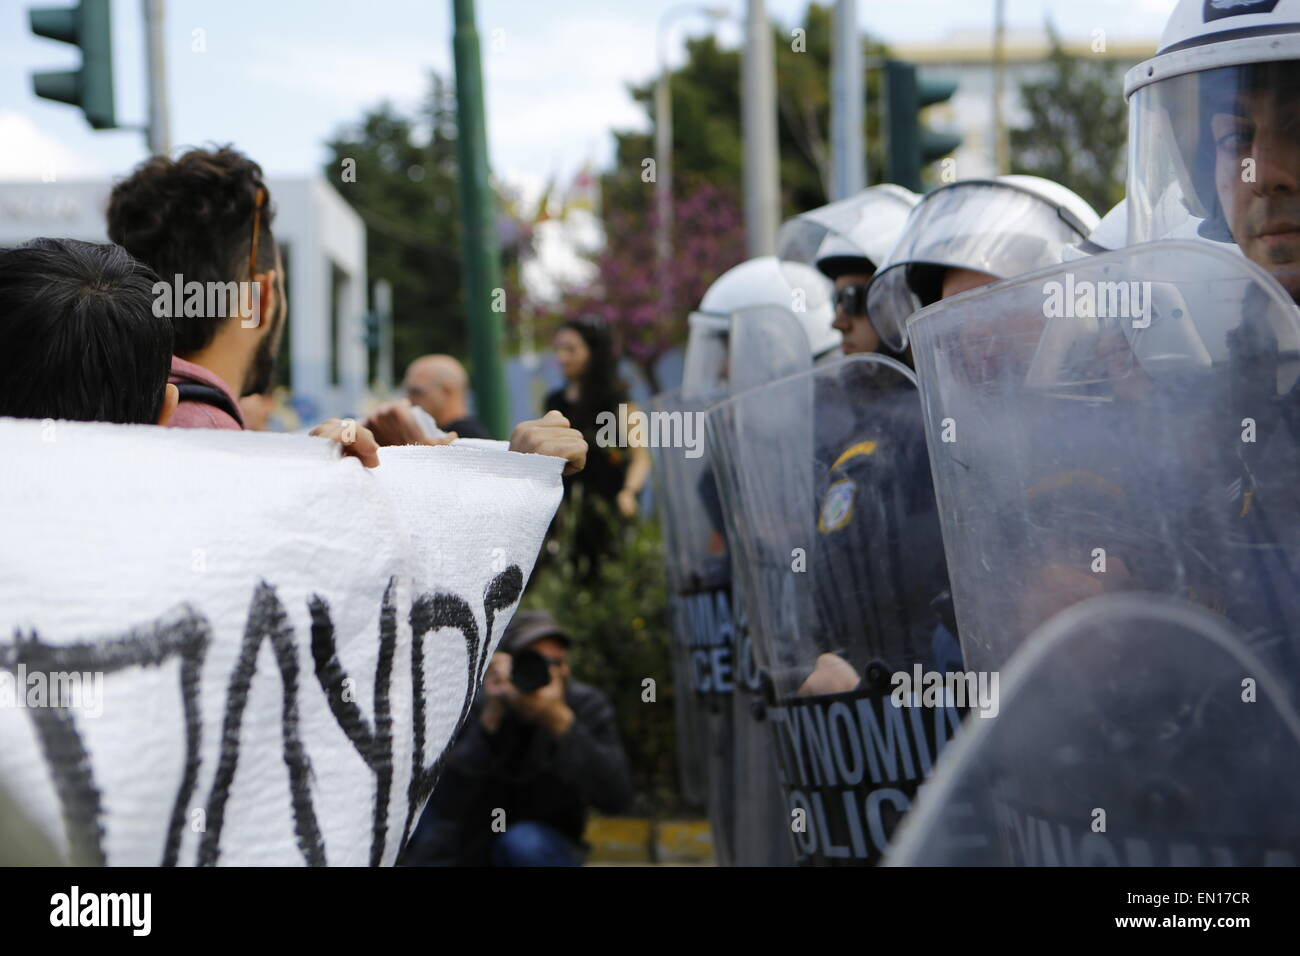 Athens, Greece. 25th Apr, 2015. Pro-immigration protesters and riot police officers face each other outside the - Stock Image